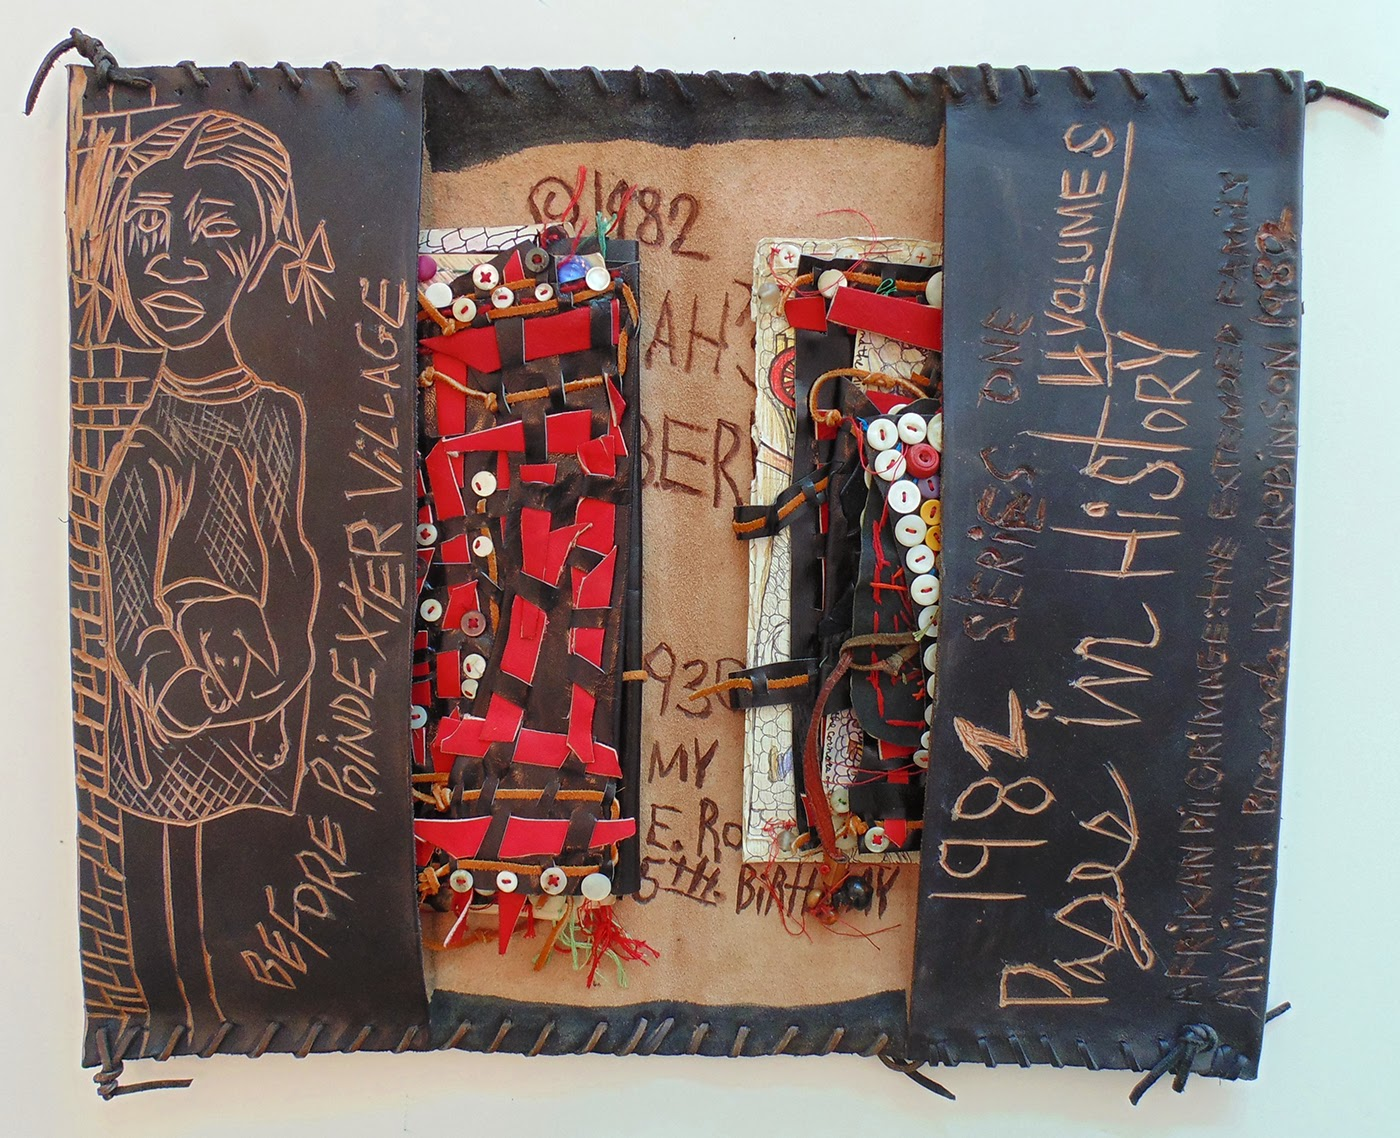 Inspirational Aminah Brenda Lynn Robinson Aminah us Blackberry Patch Before Poindexter Village Carved dyed and sewn leather with five insets insets are